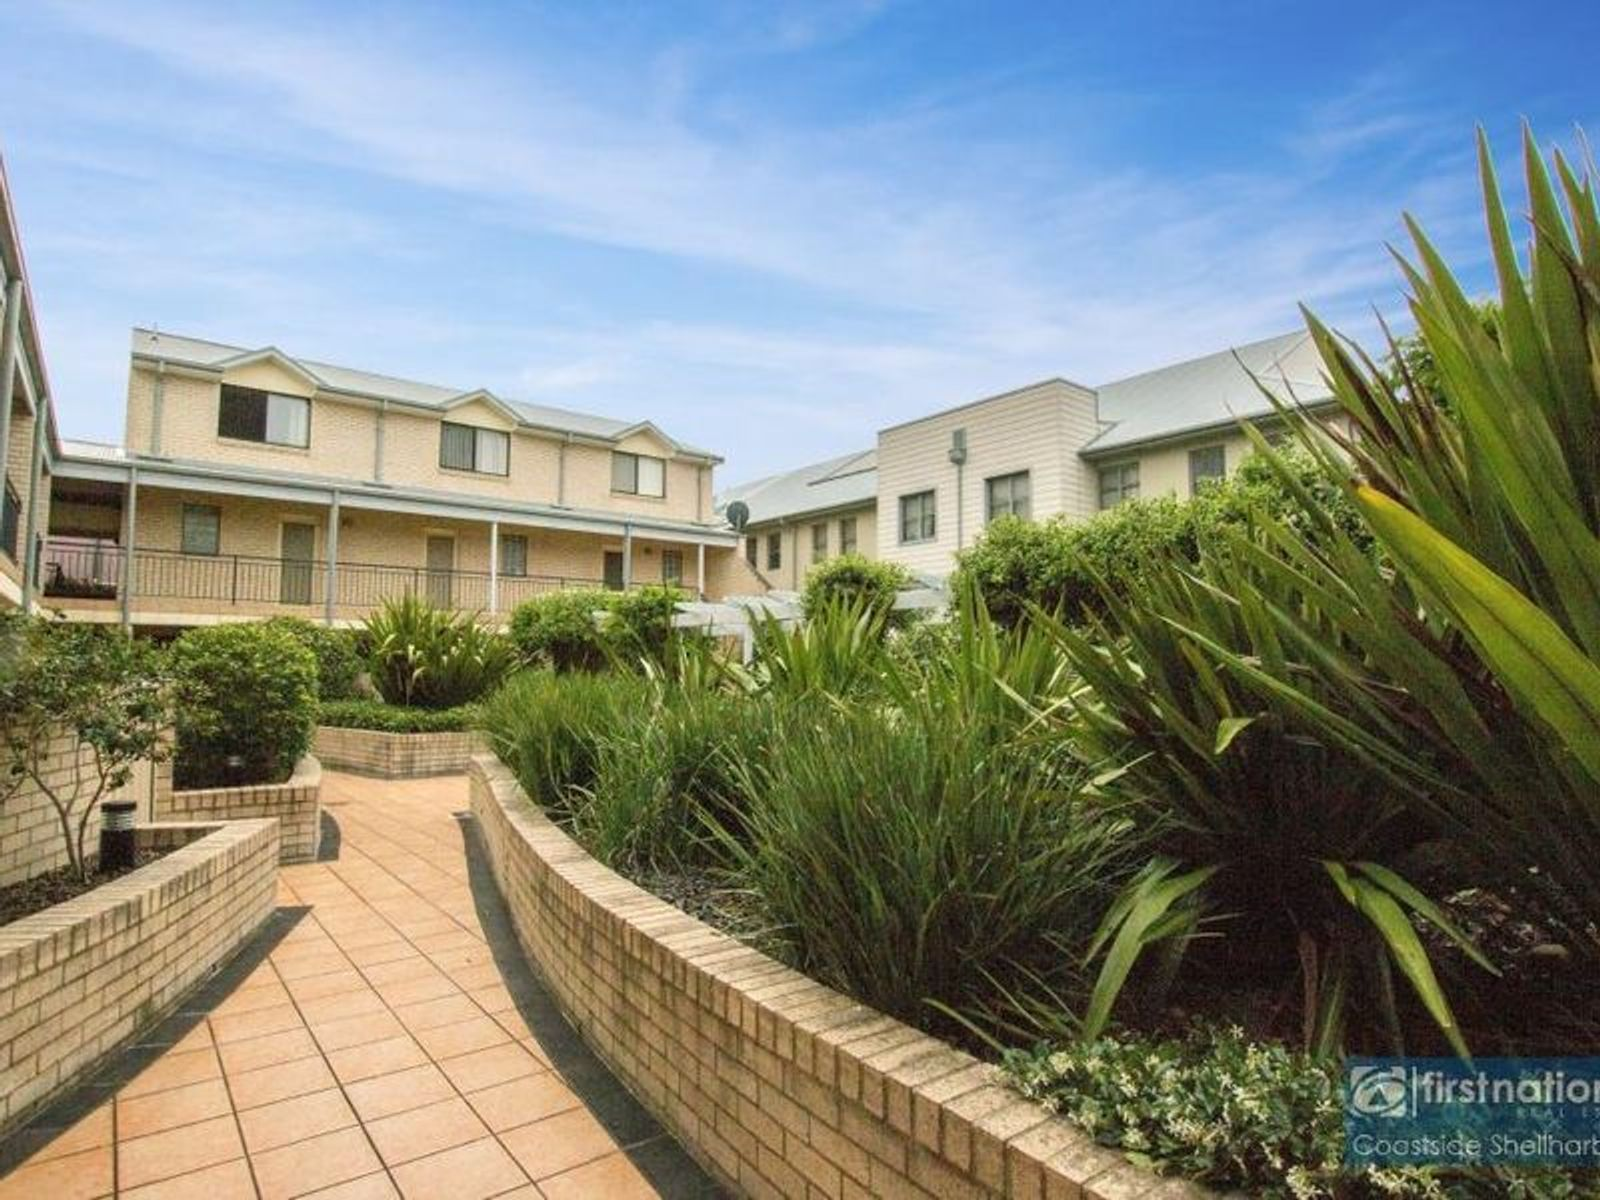 21/28 Addison Street, Shellharbour, NSW 2529